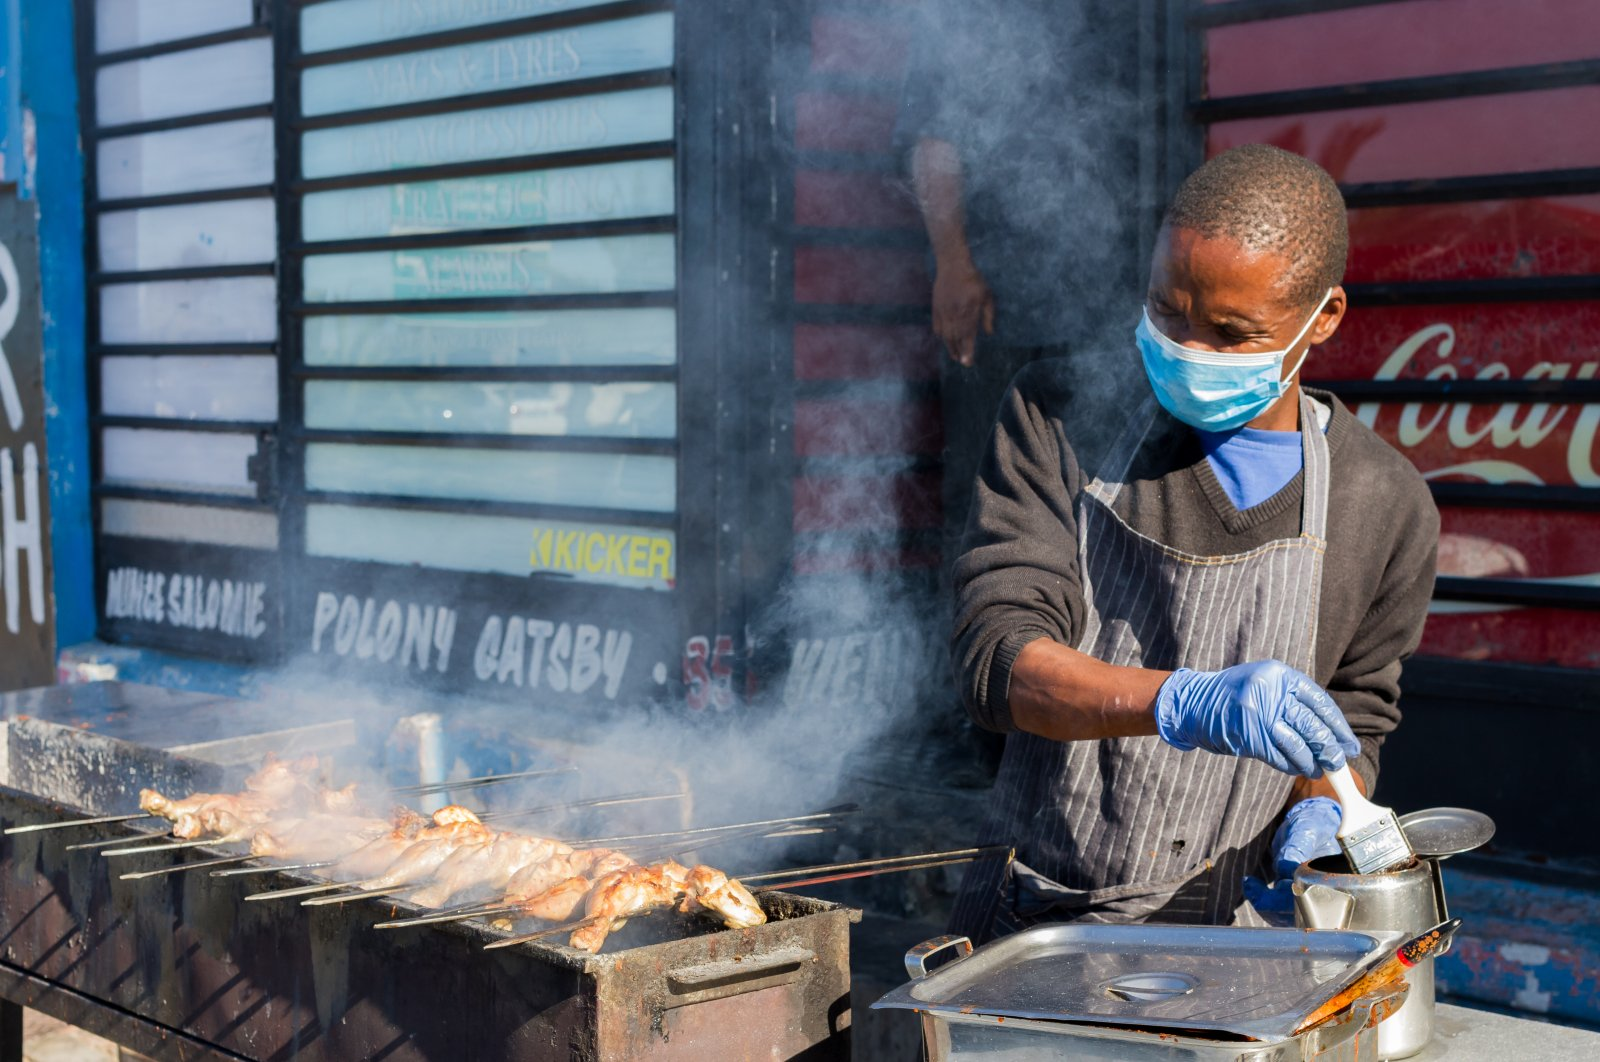 African street food vendor wearing a protective mask in Cape Town, South Africa, June 2020. (Shutterstock Photo)